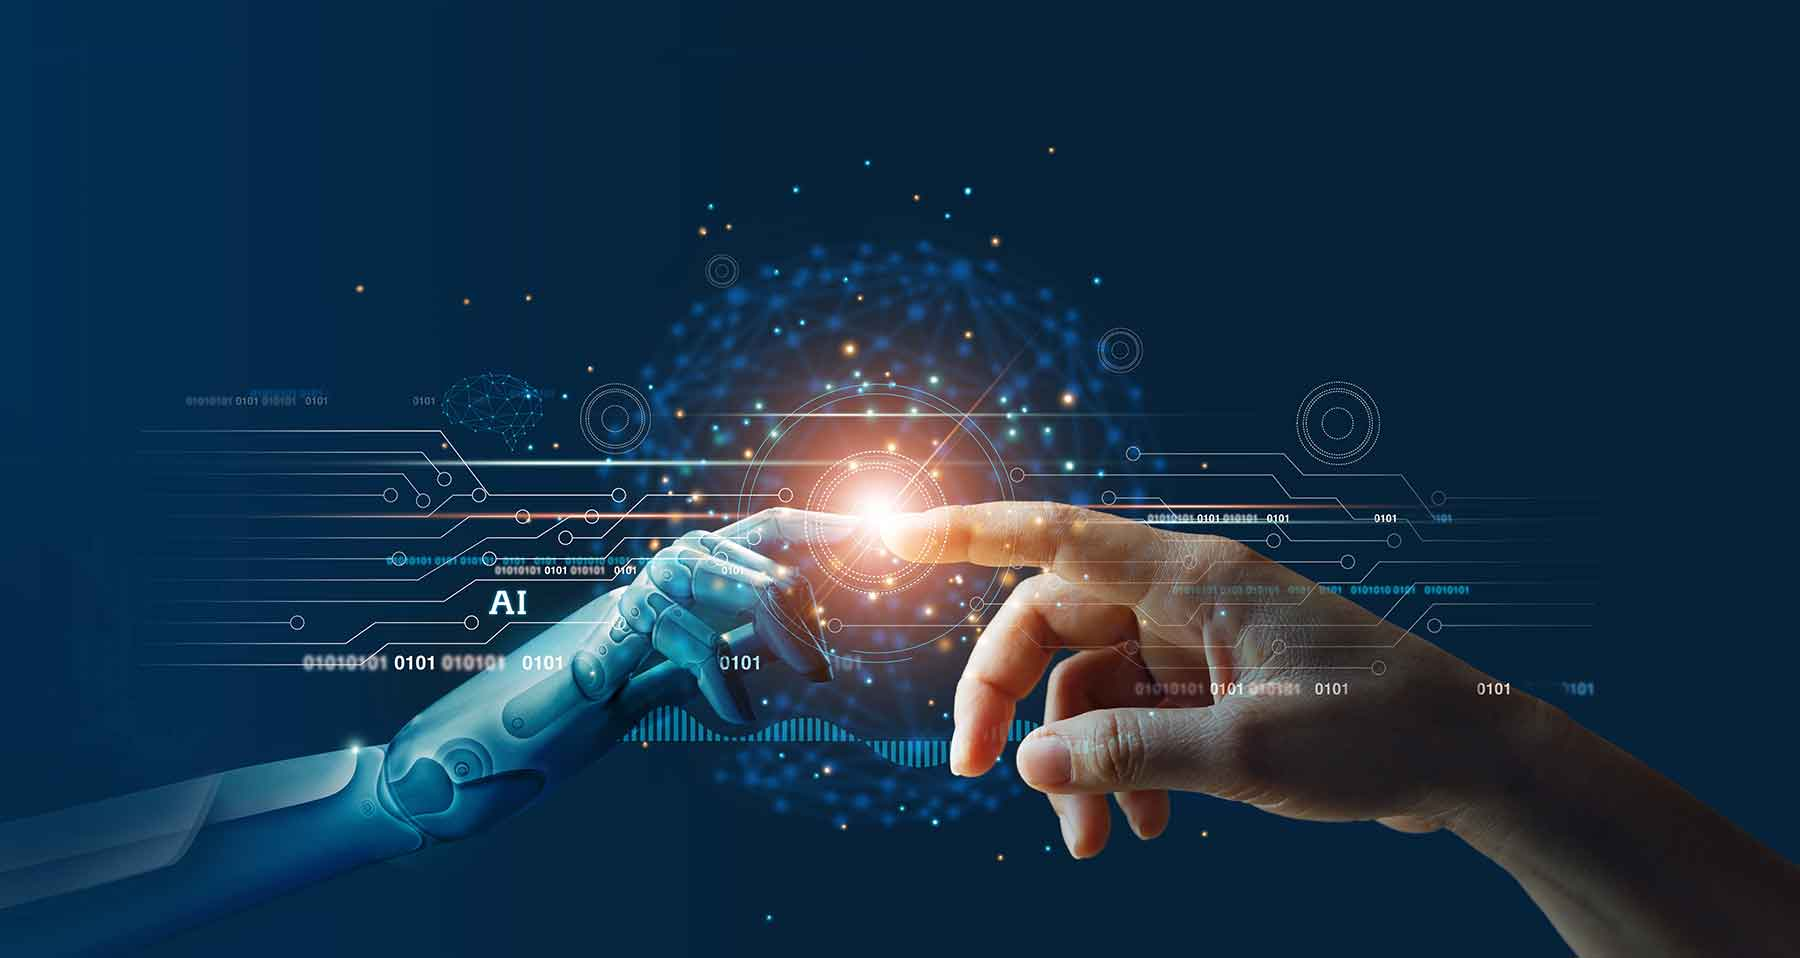 Developing AI with a 'human-centered' core